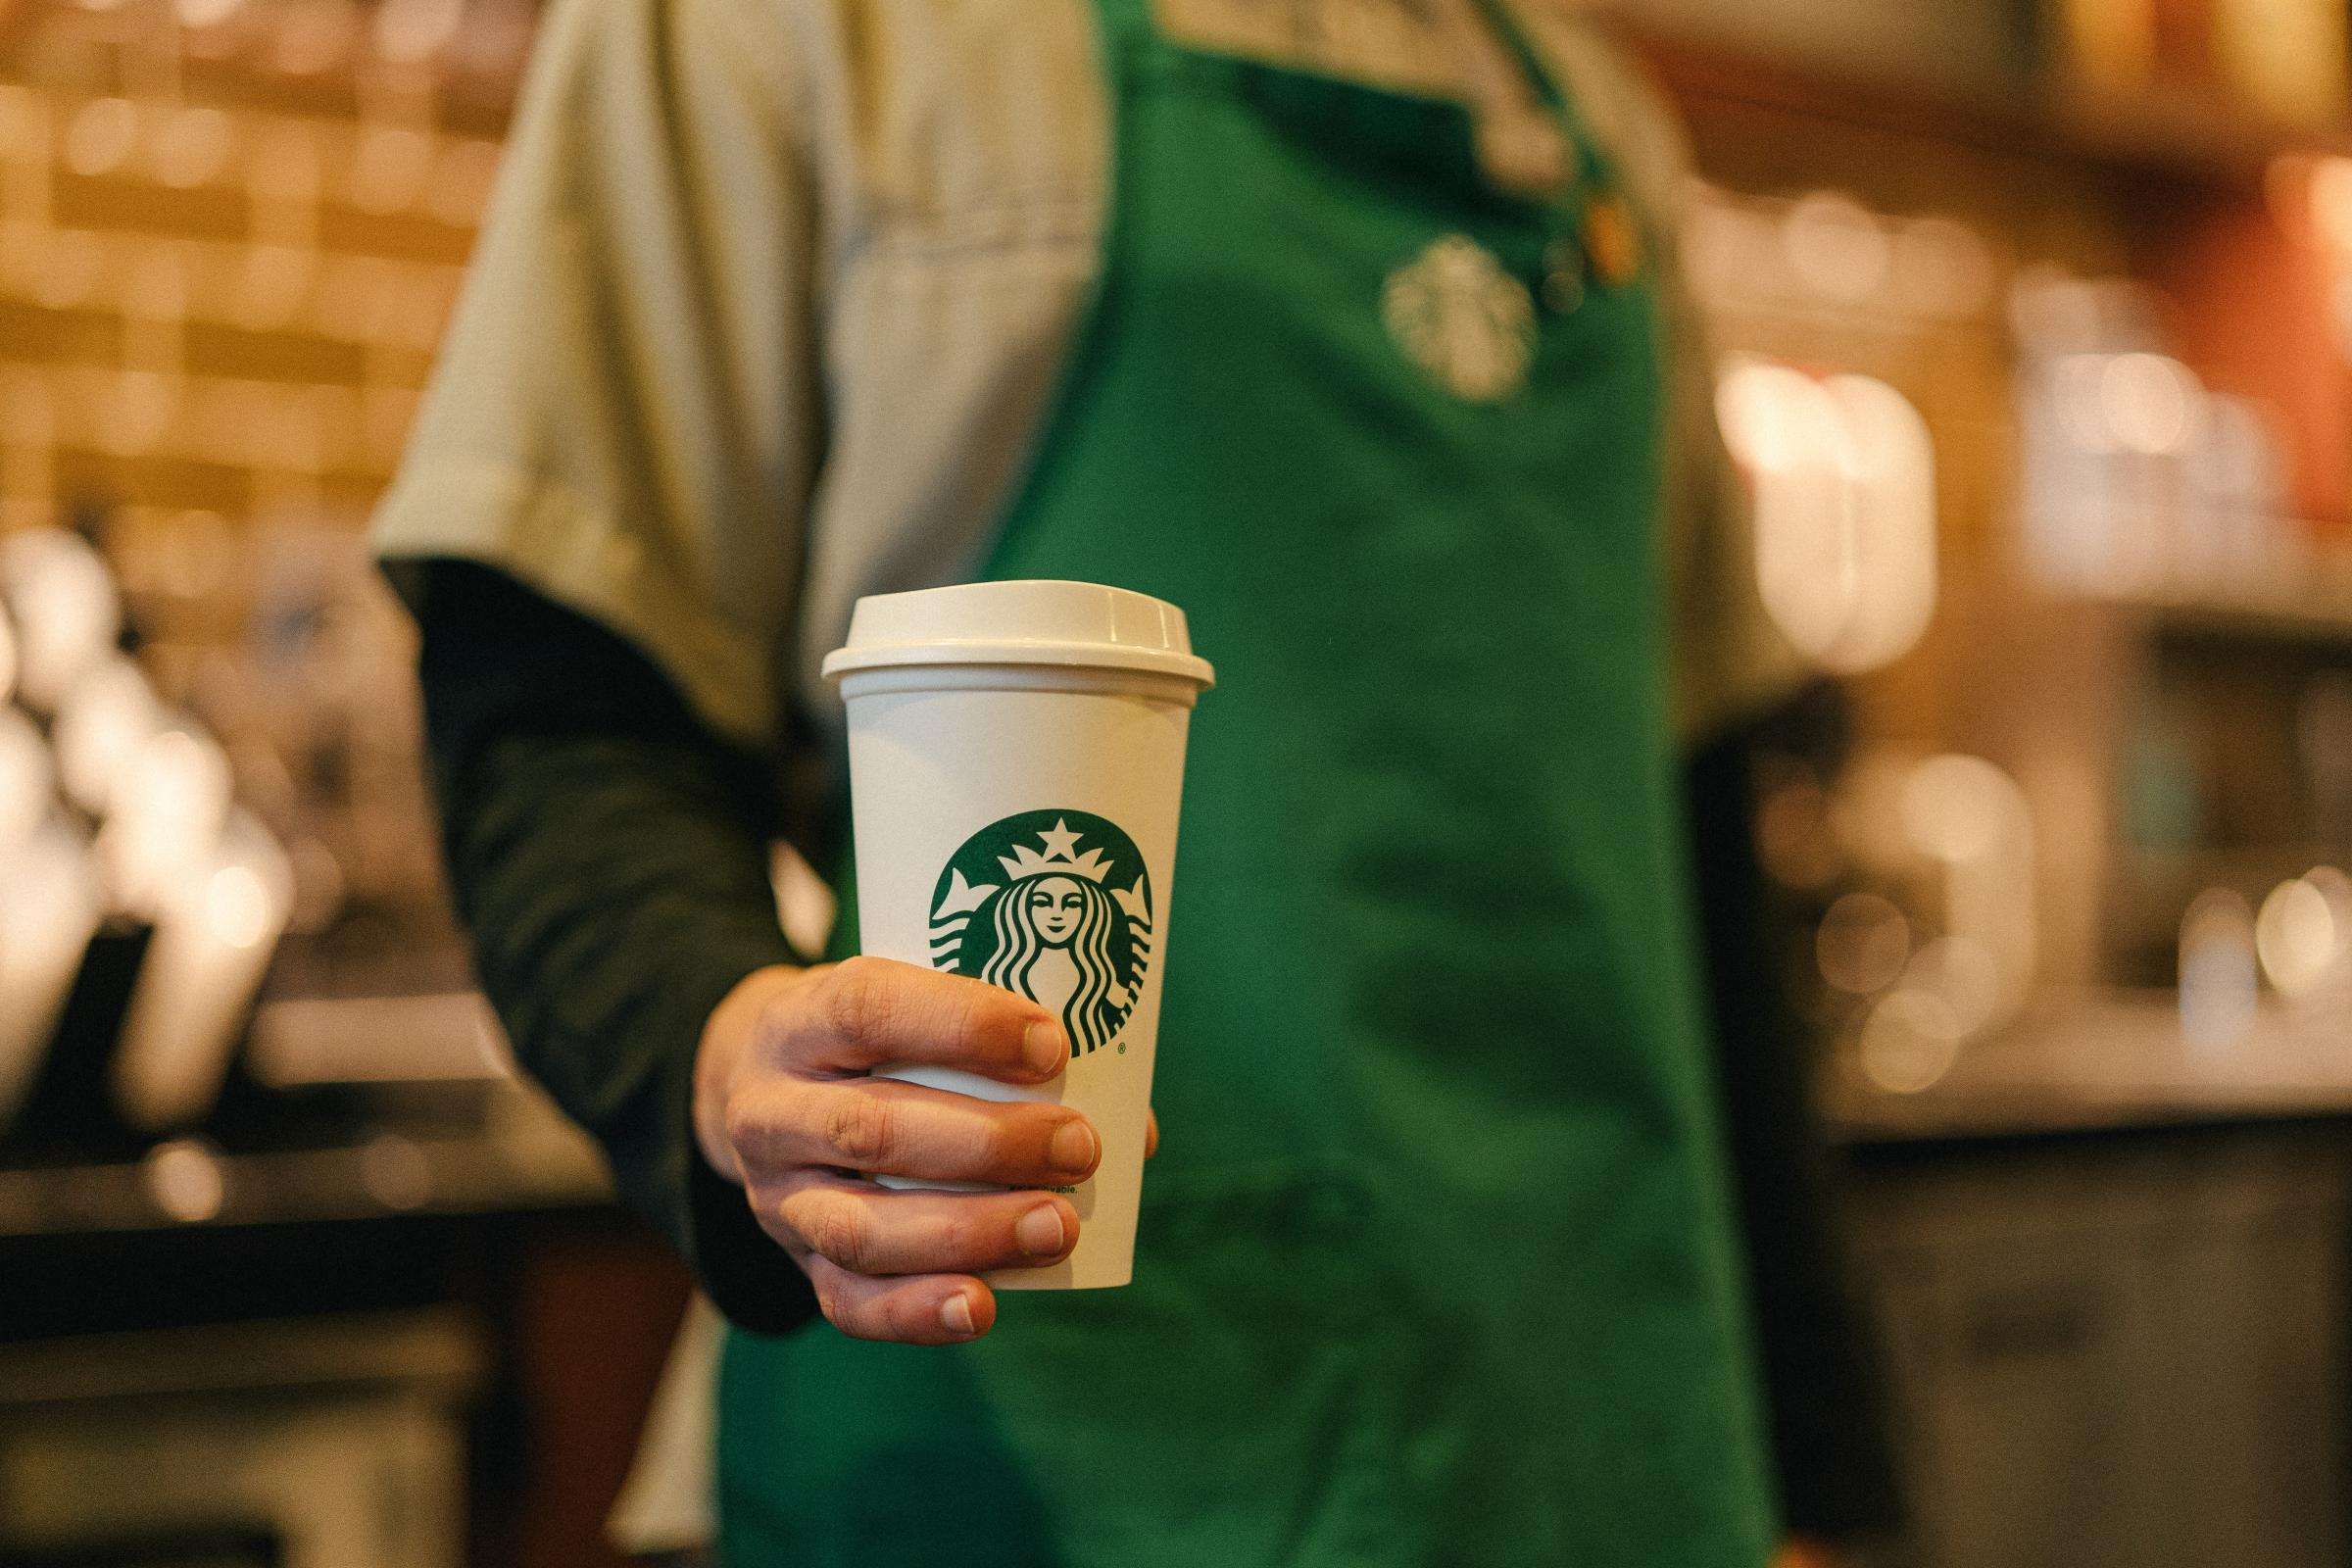 Starbucks bans personal cups to stop spread of coronavirus